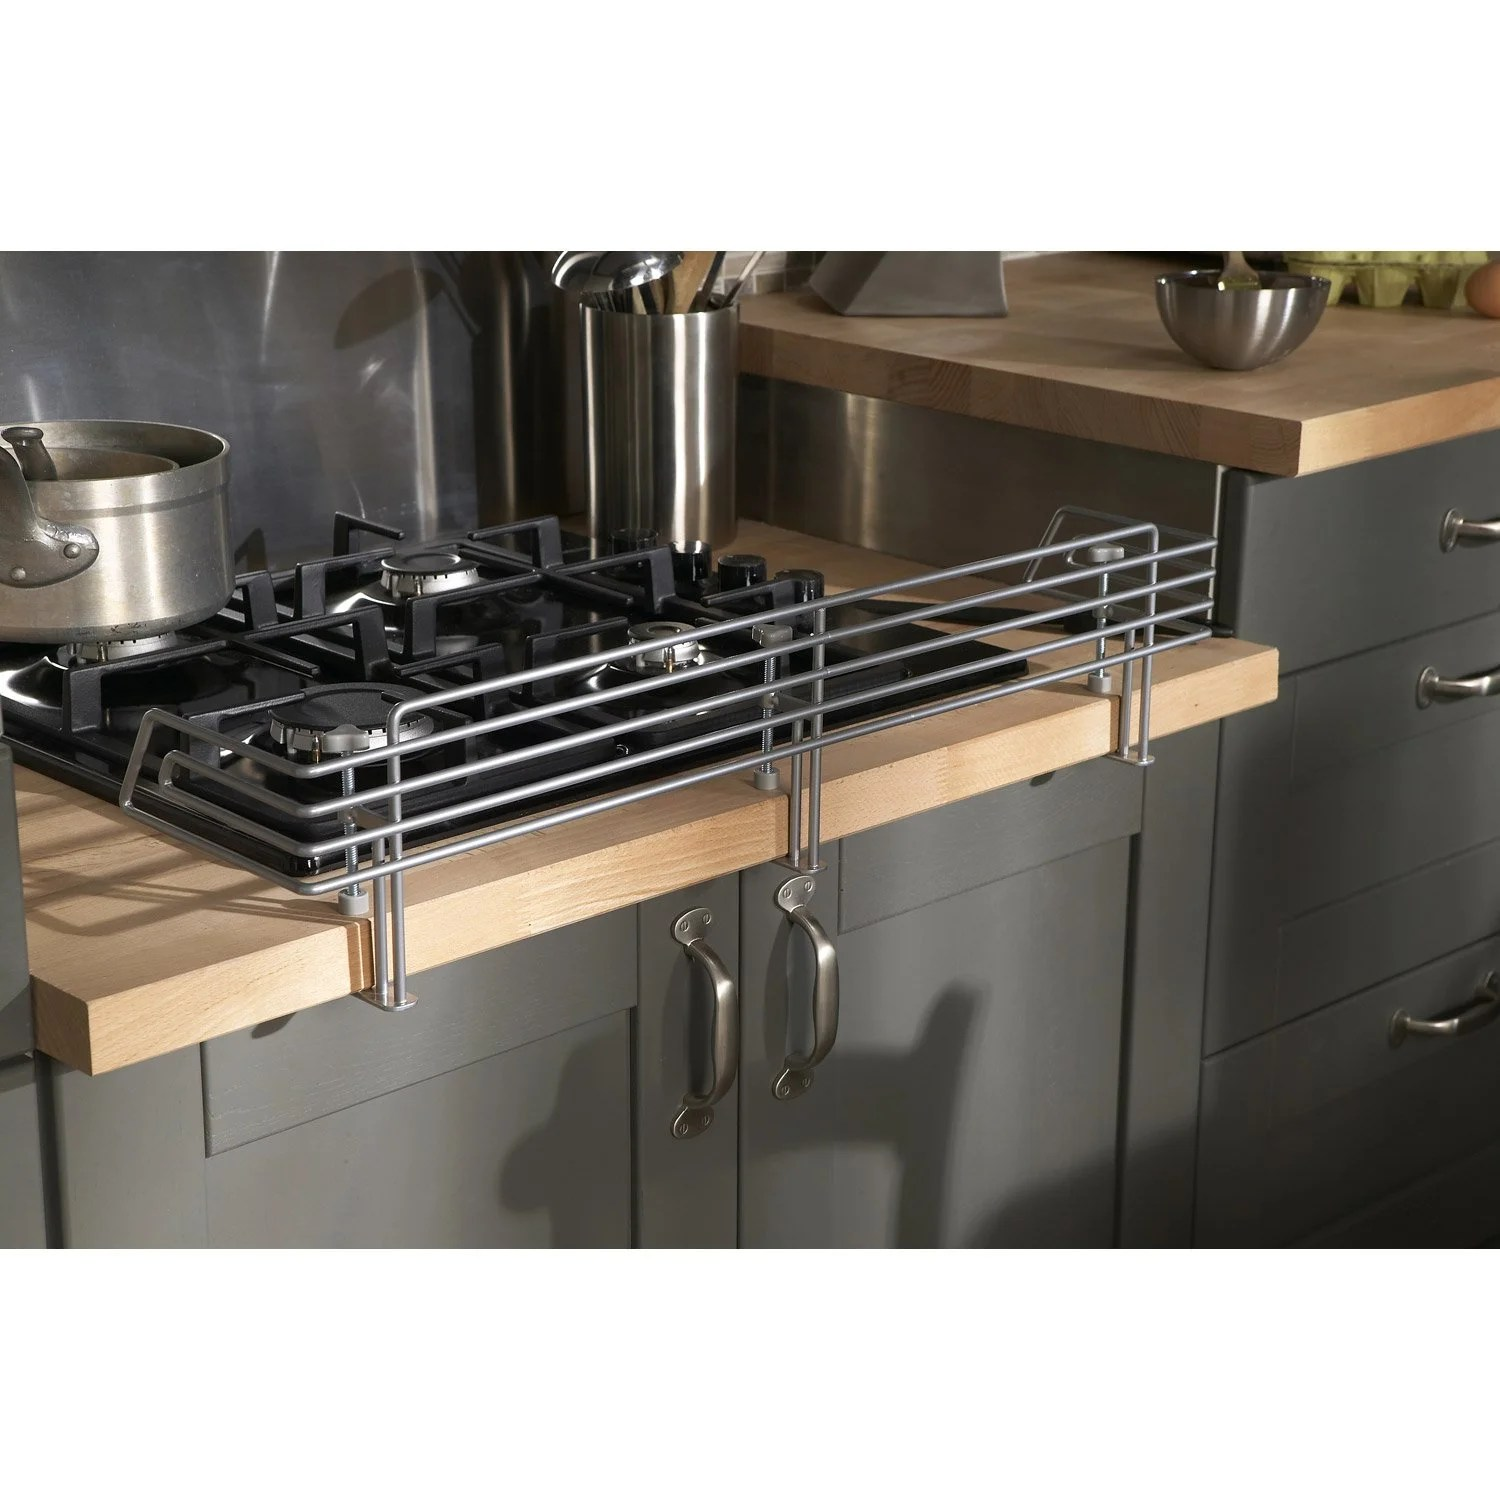 Table De Cuisson Leroy Merlin Protection Enfant Pour Table De Cuisson L 70 Cm Leroy Merlin